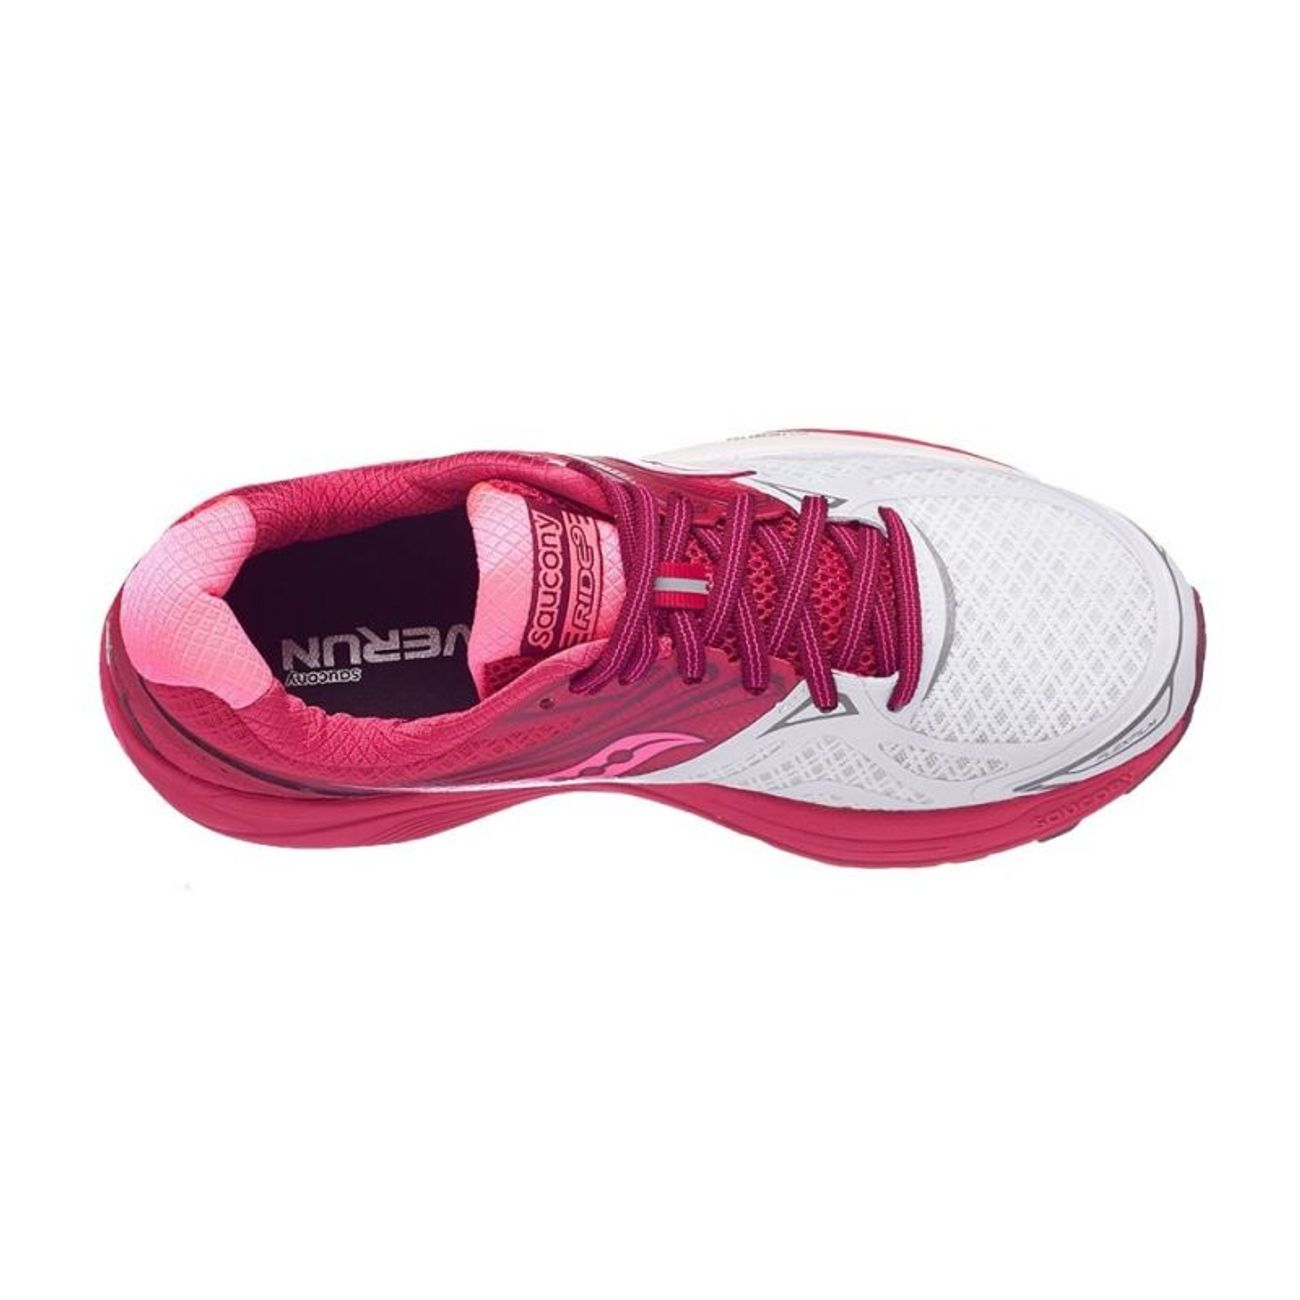 Adulte Running Saucony Ride 9 Rose Blanc S103186 F1JclK